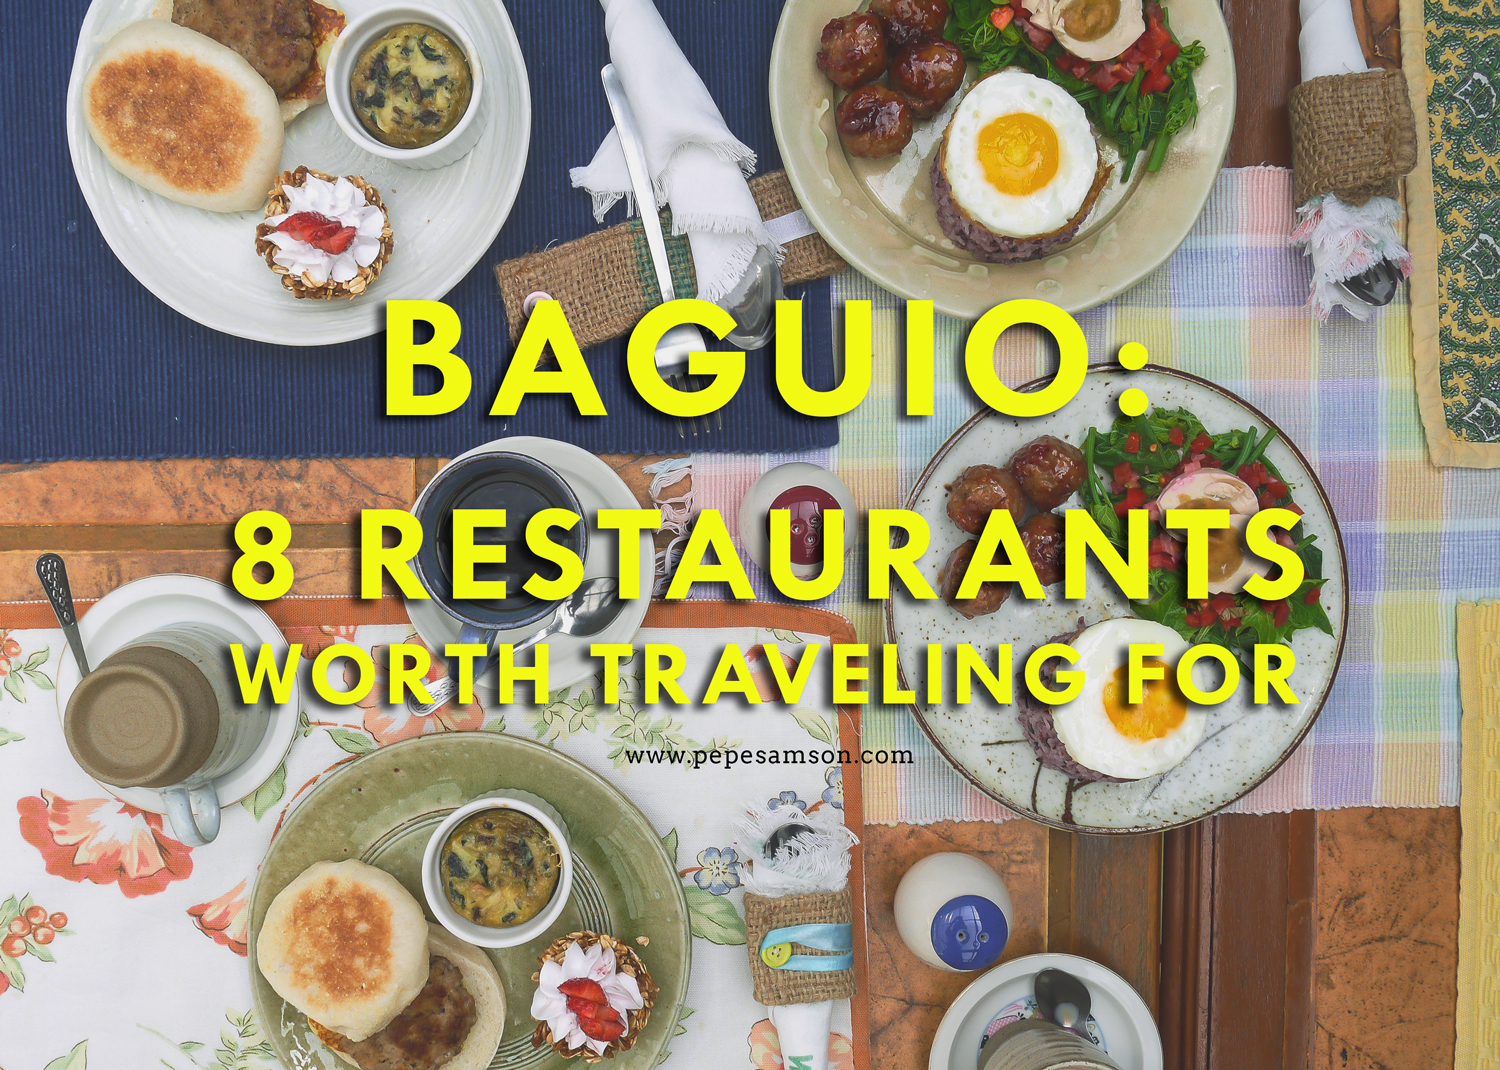 Baguio Food Trip: 8 Restaurants Worth Traveling for